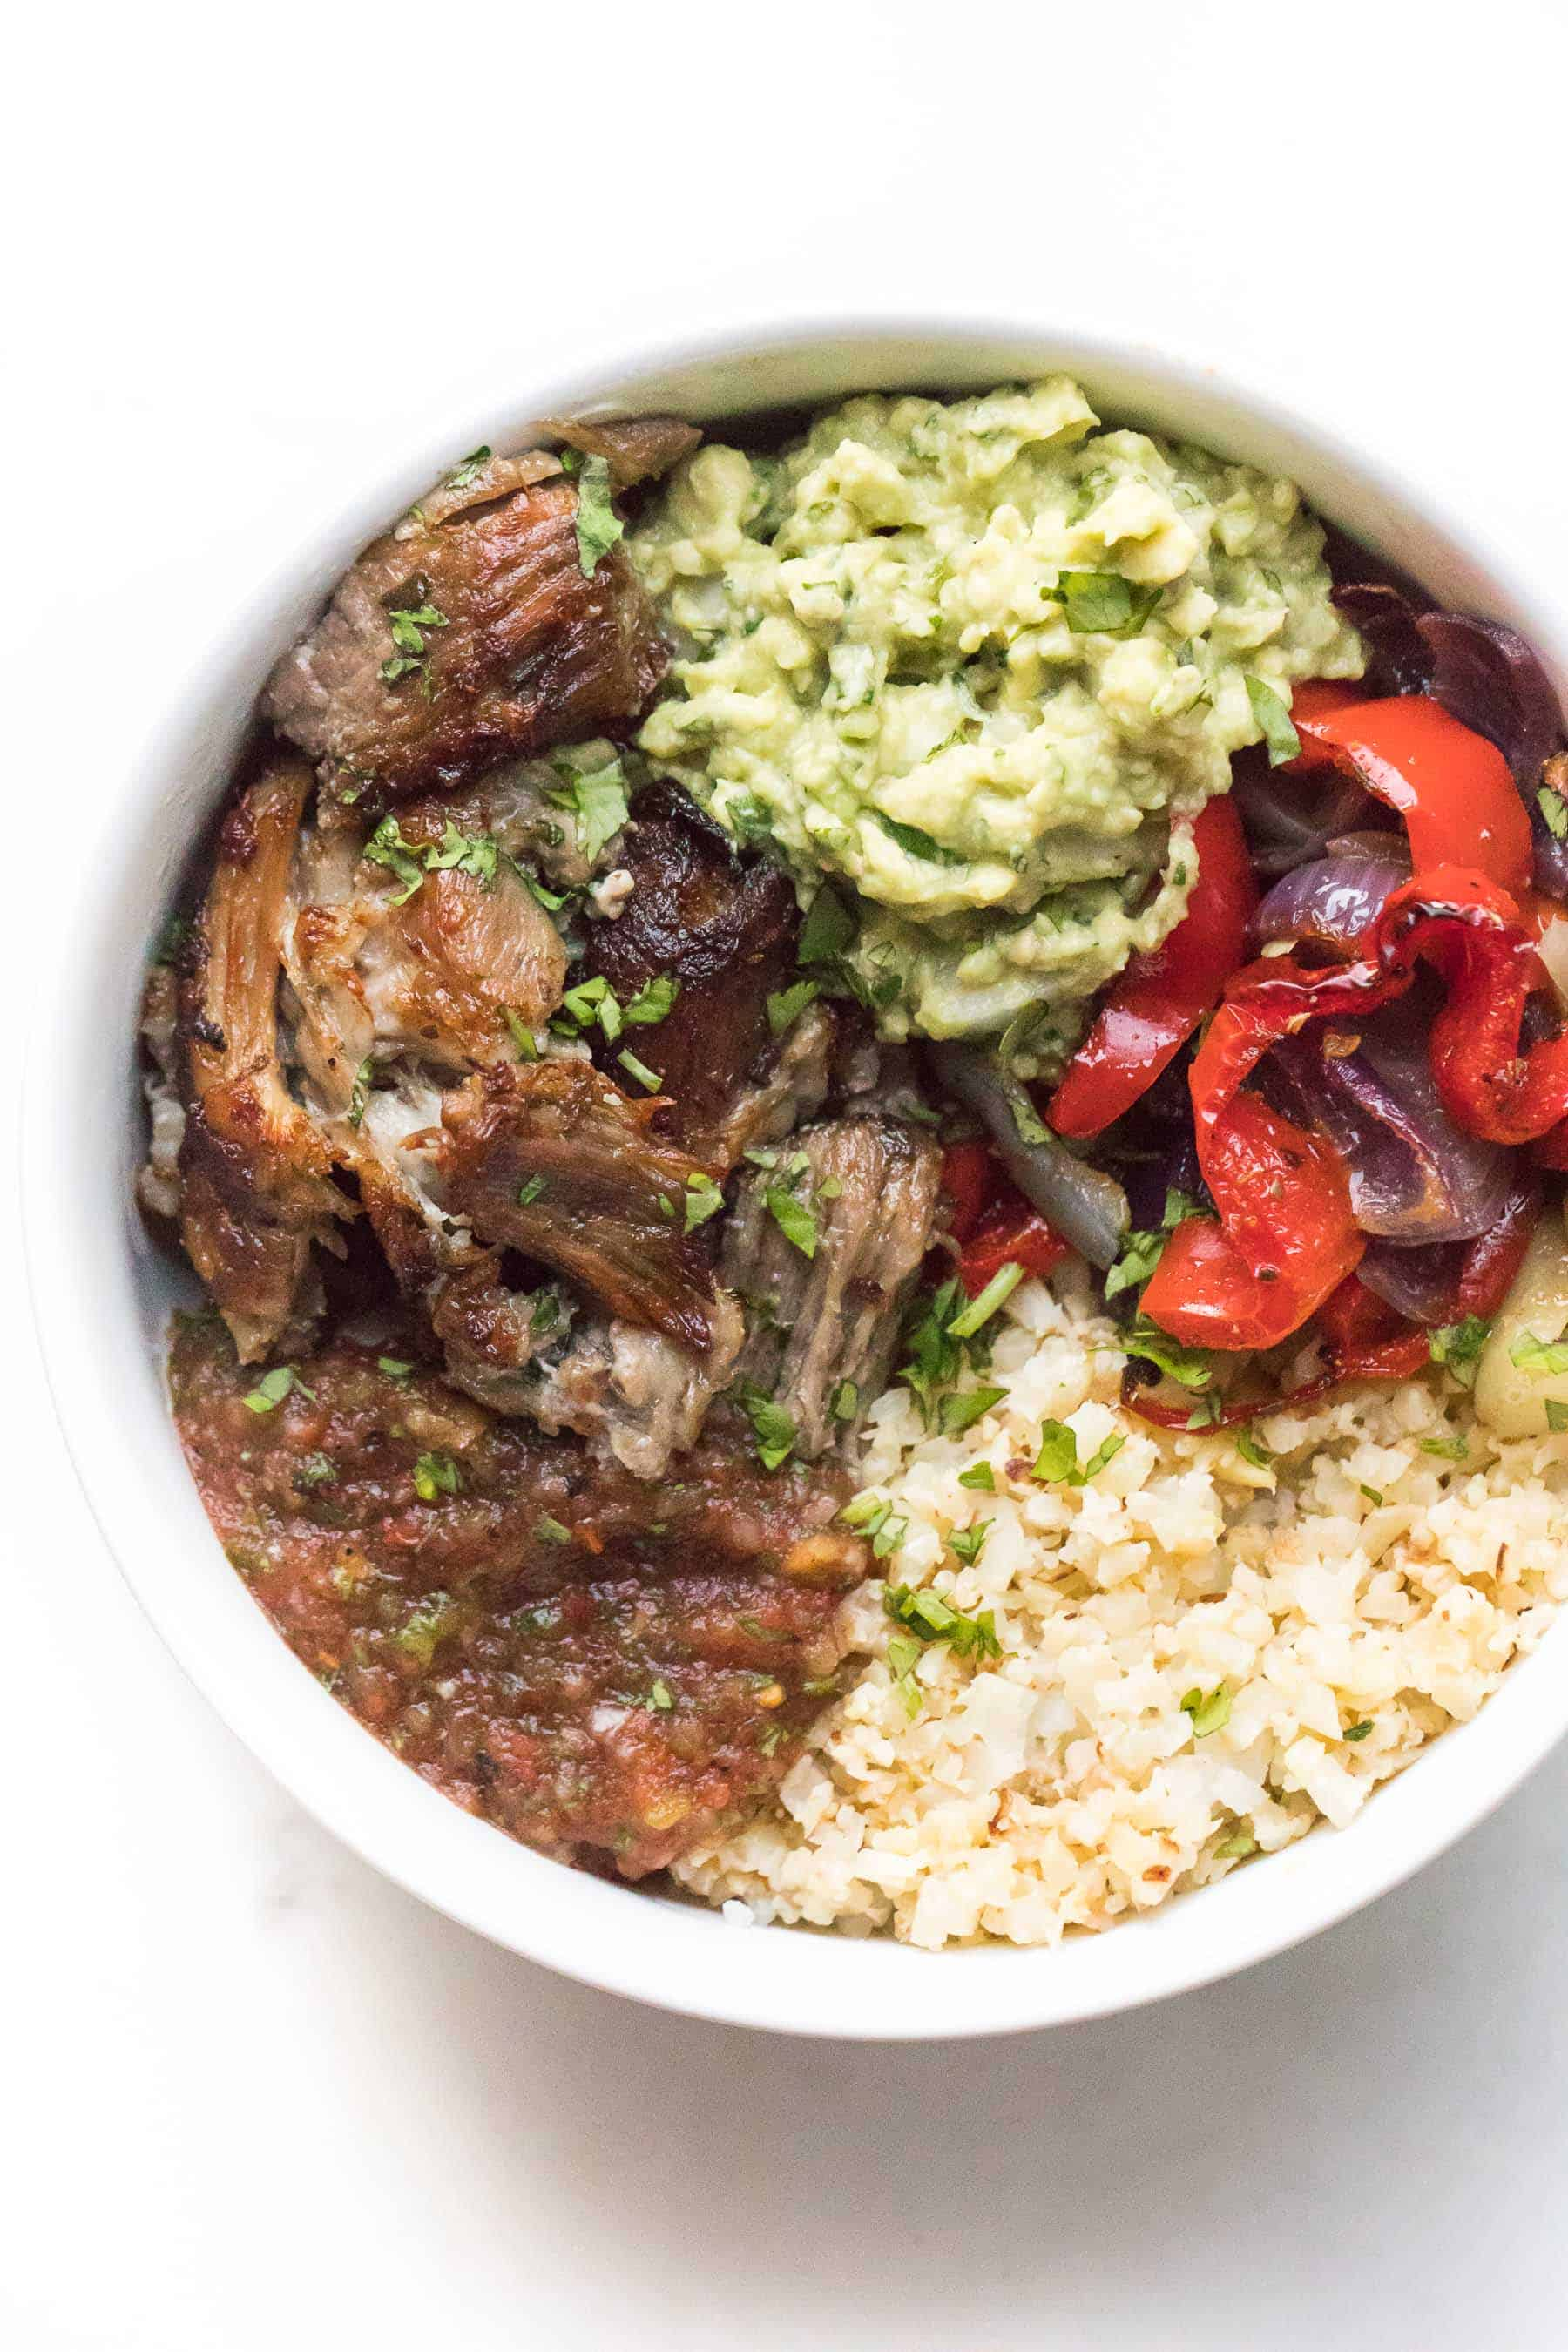 carnitas burrito bowl in a white plate on a white background